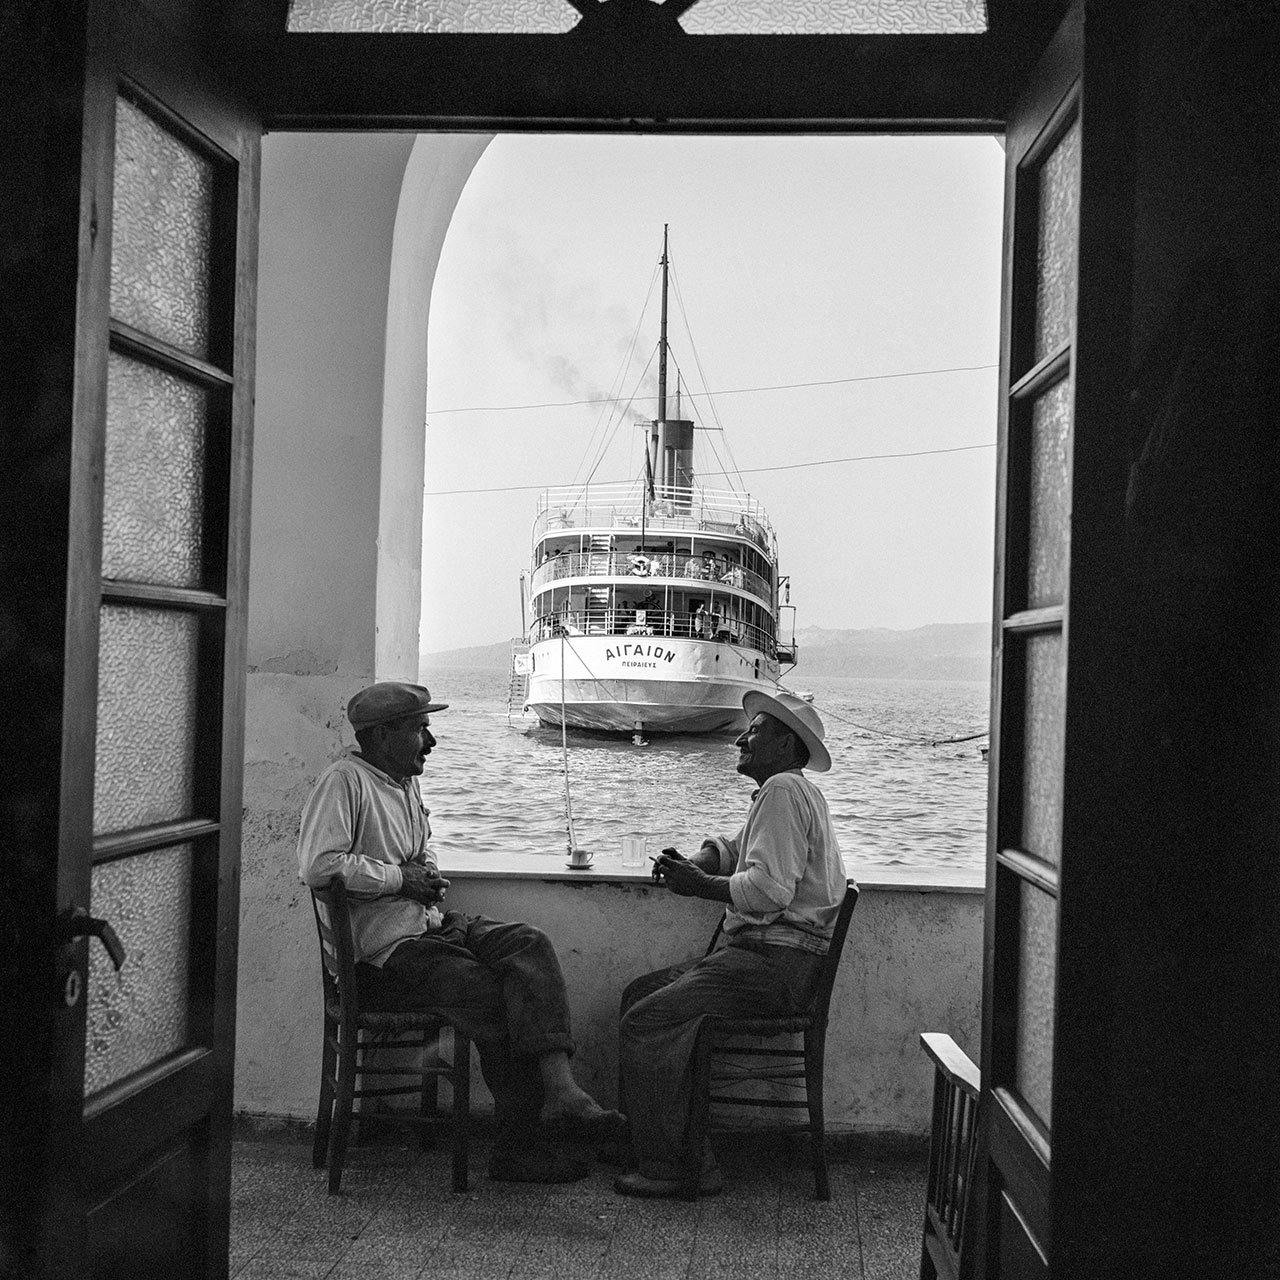 Santorini. The Aigaion in port. Photo © Robert McCabe.